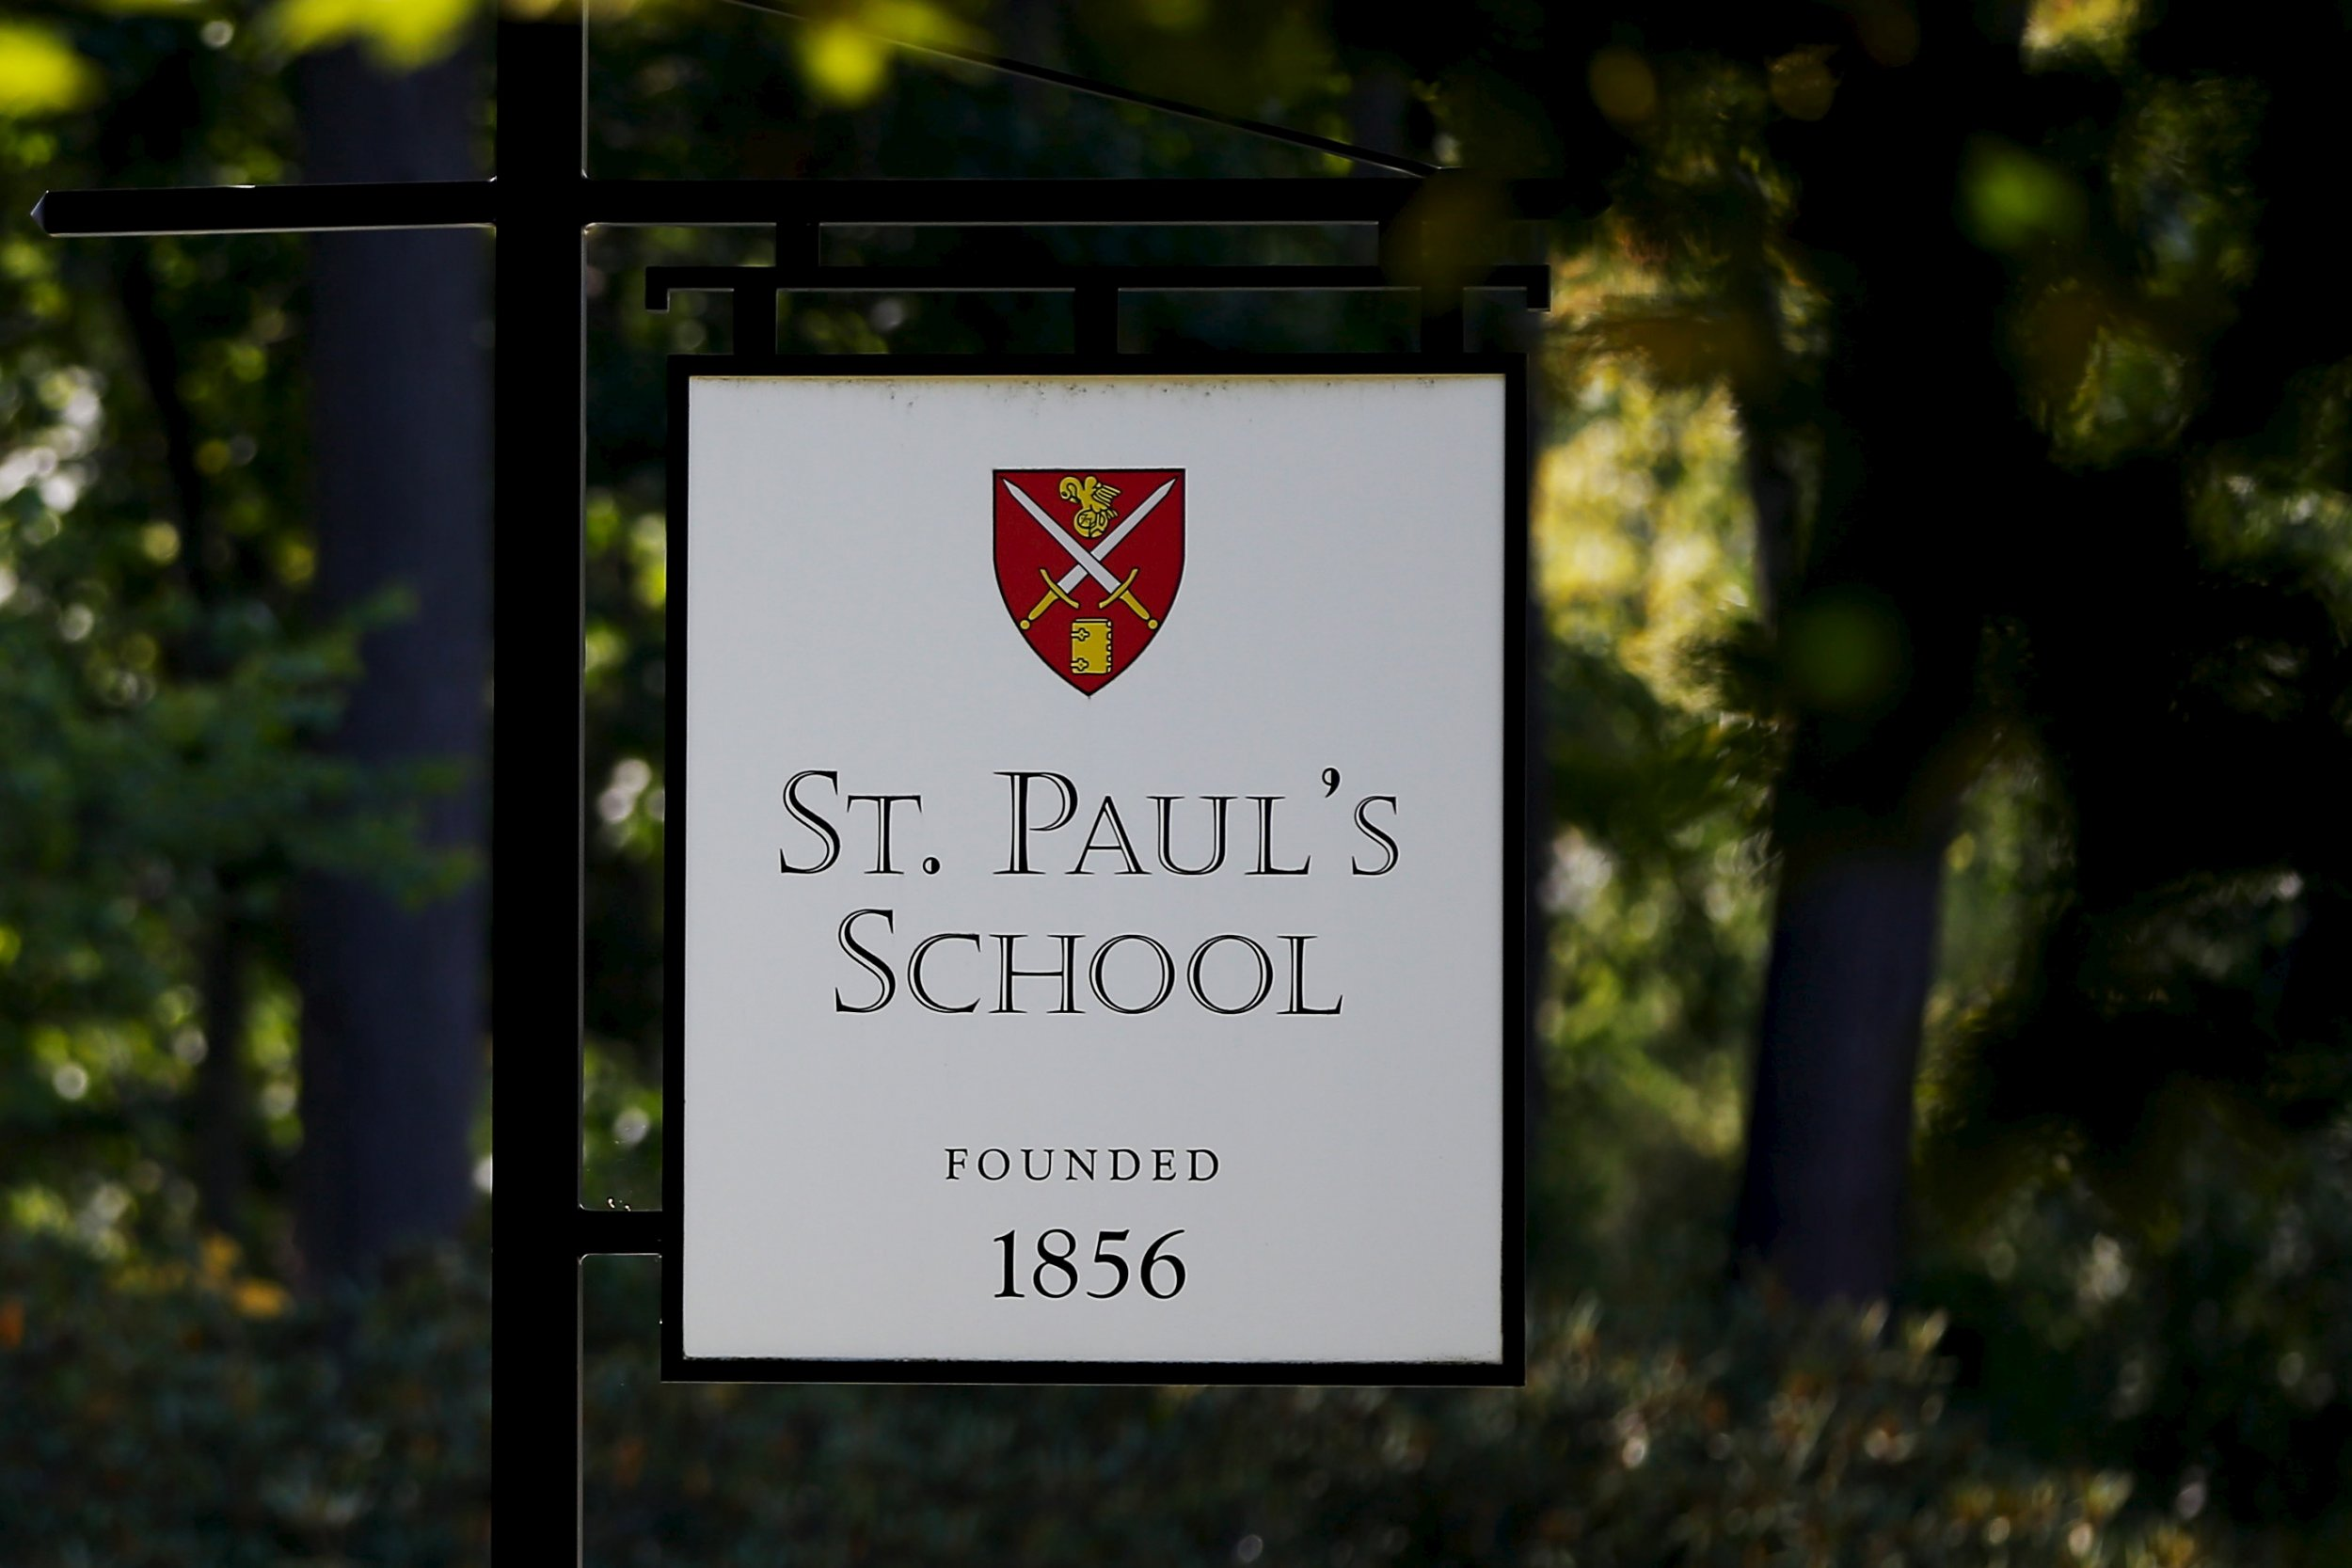 St. Paul's School (Concord, New Hampshire)